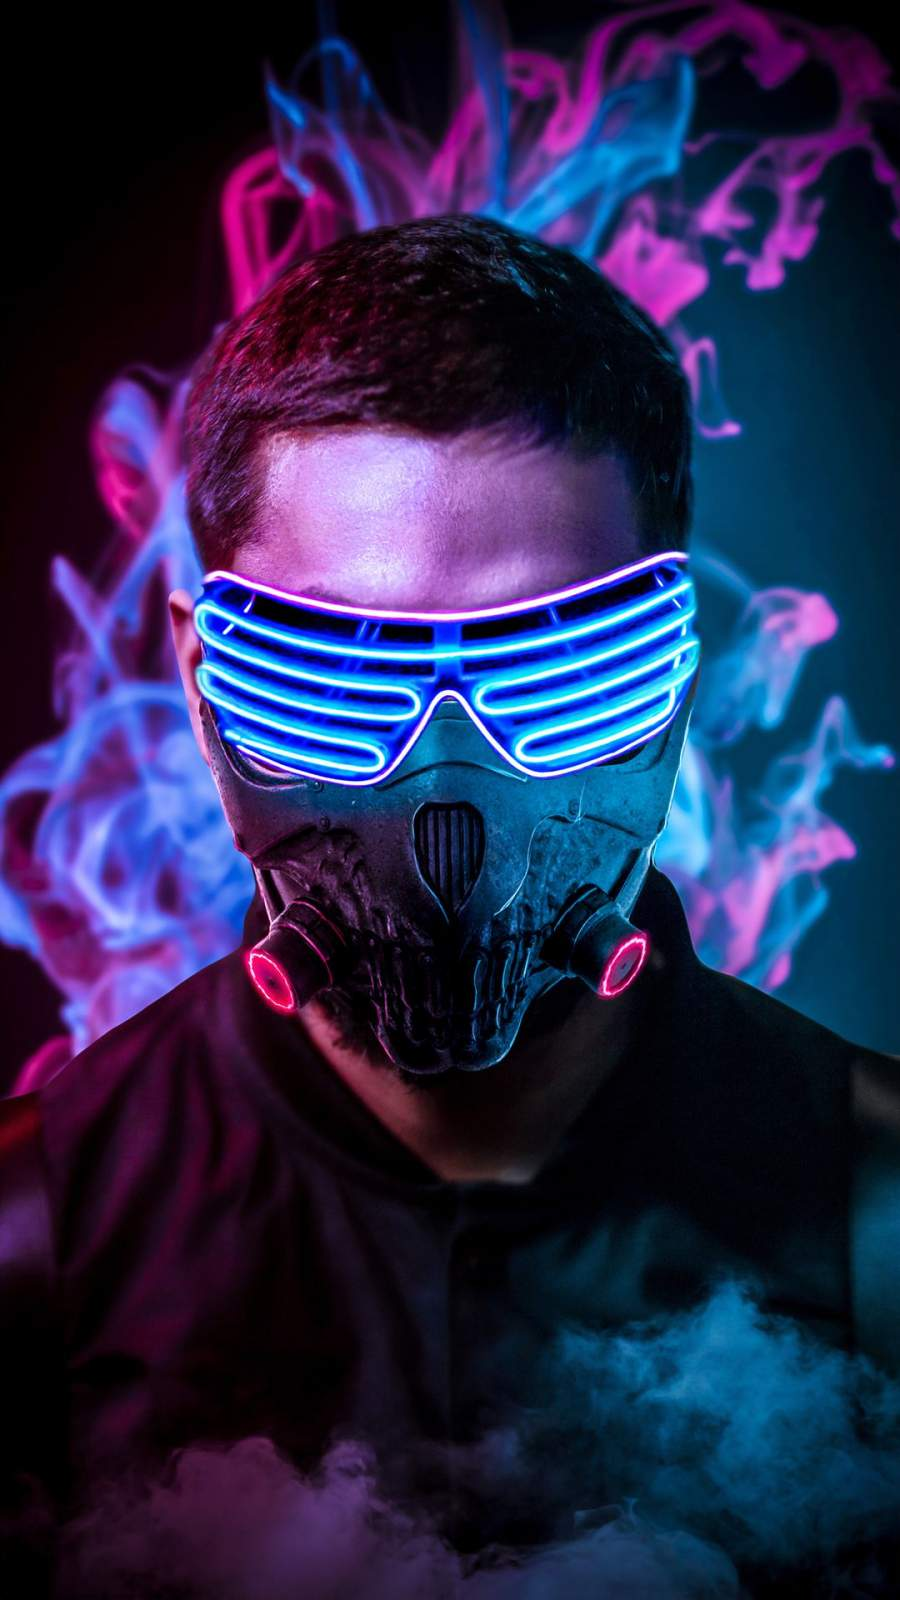 Neon Face Mask iPhone Wallpaper